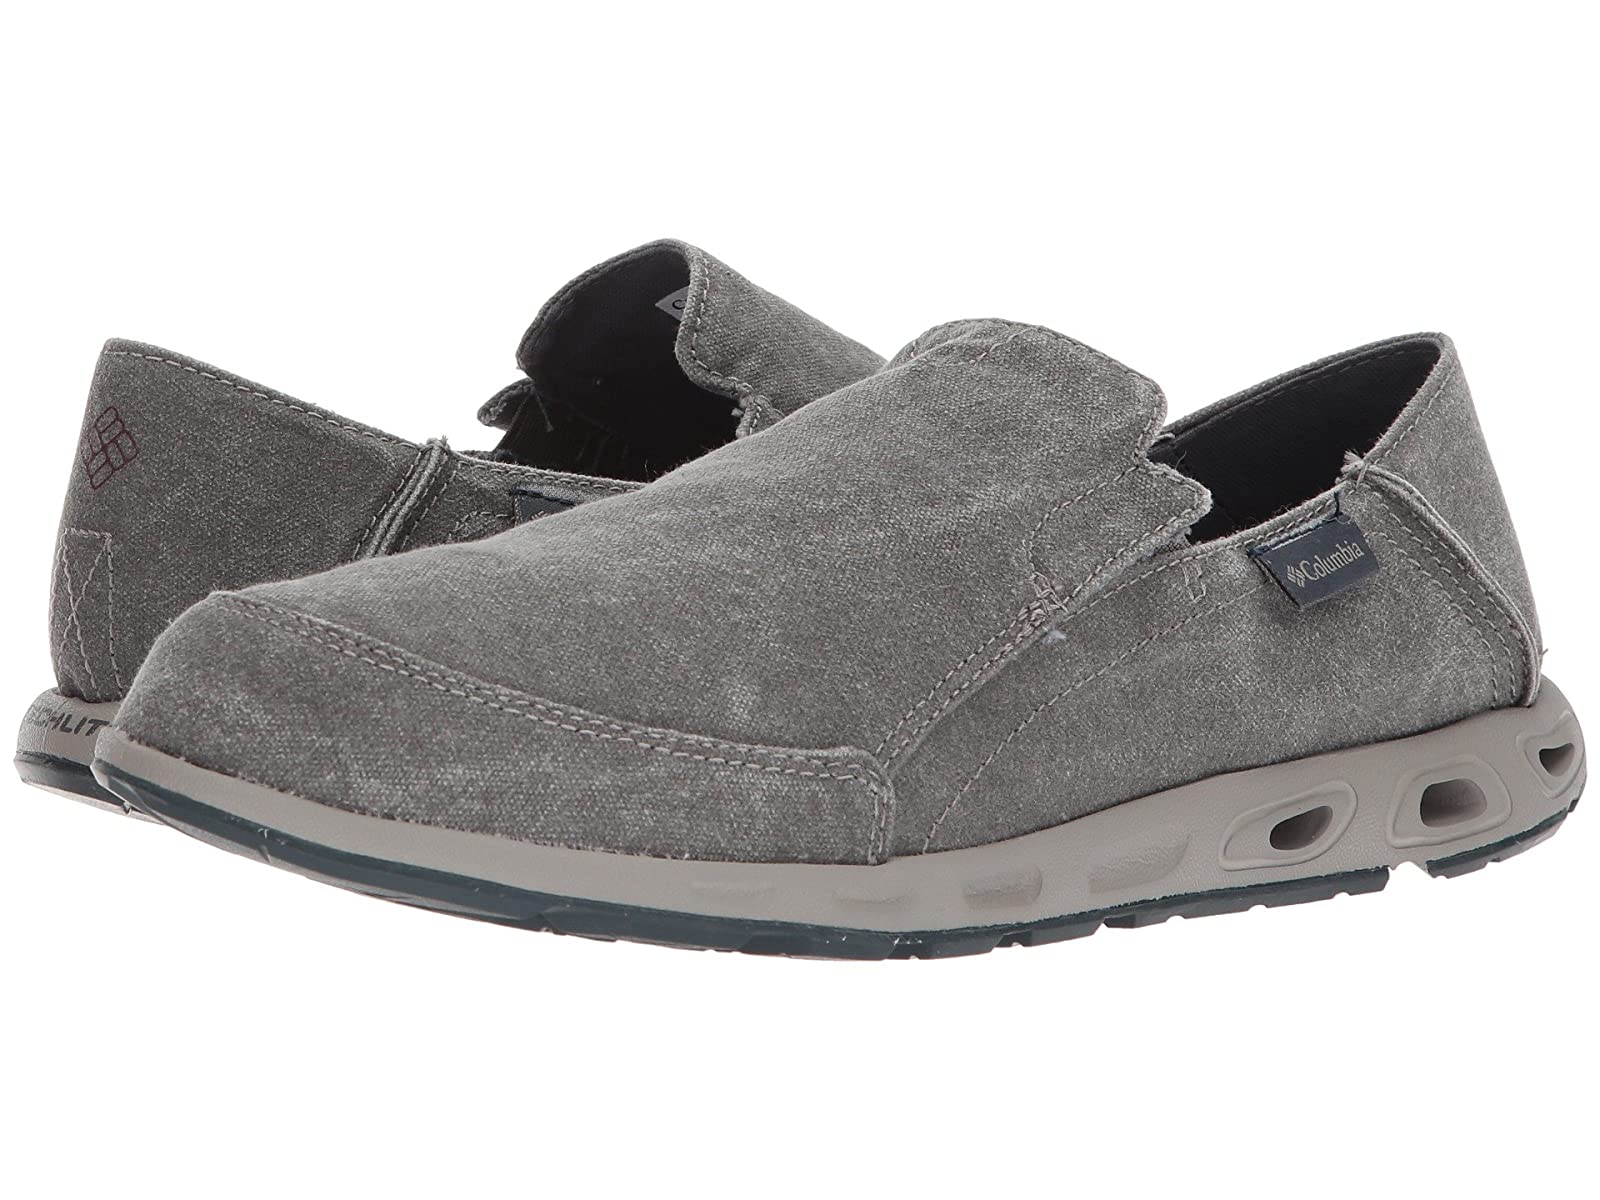 Columbia Sunvent SlipSelling fashionable and eye-catching shoes